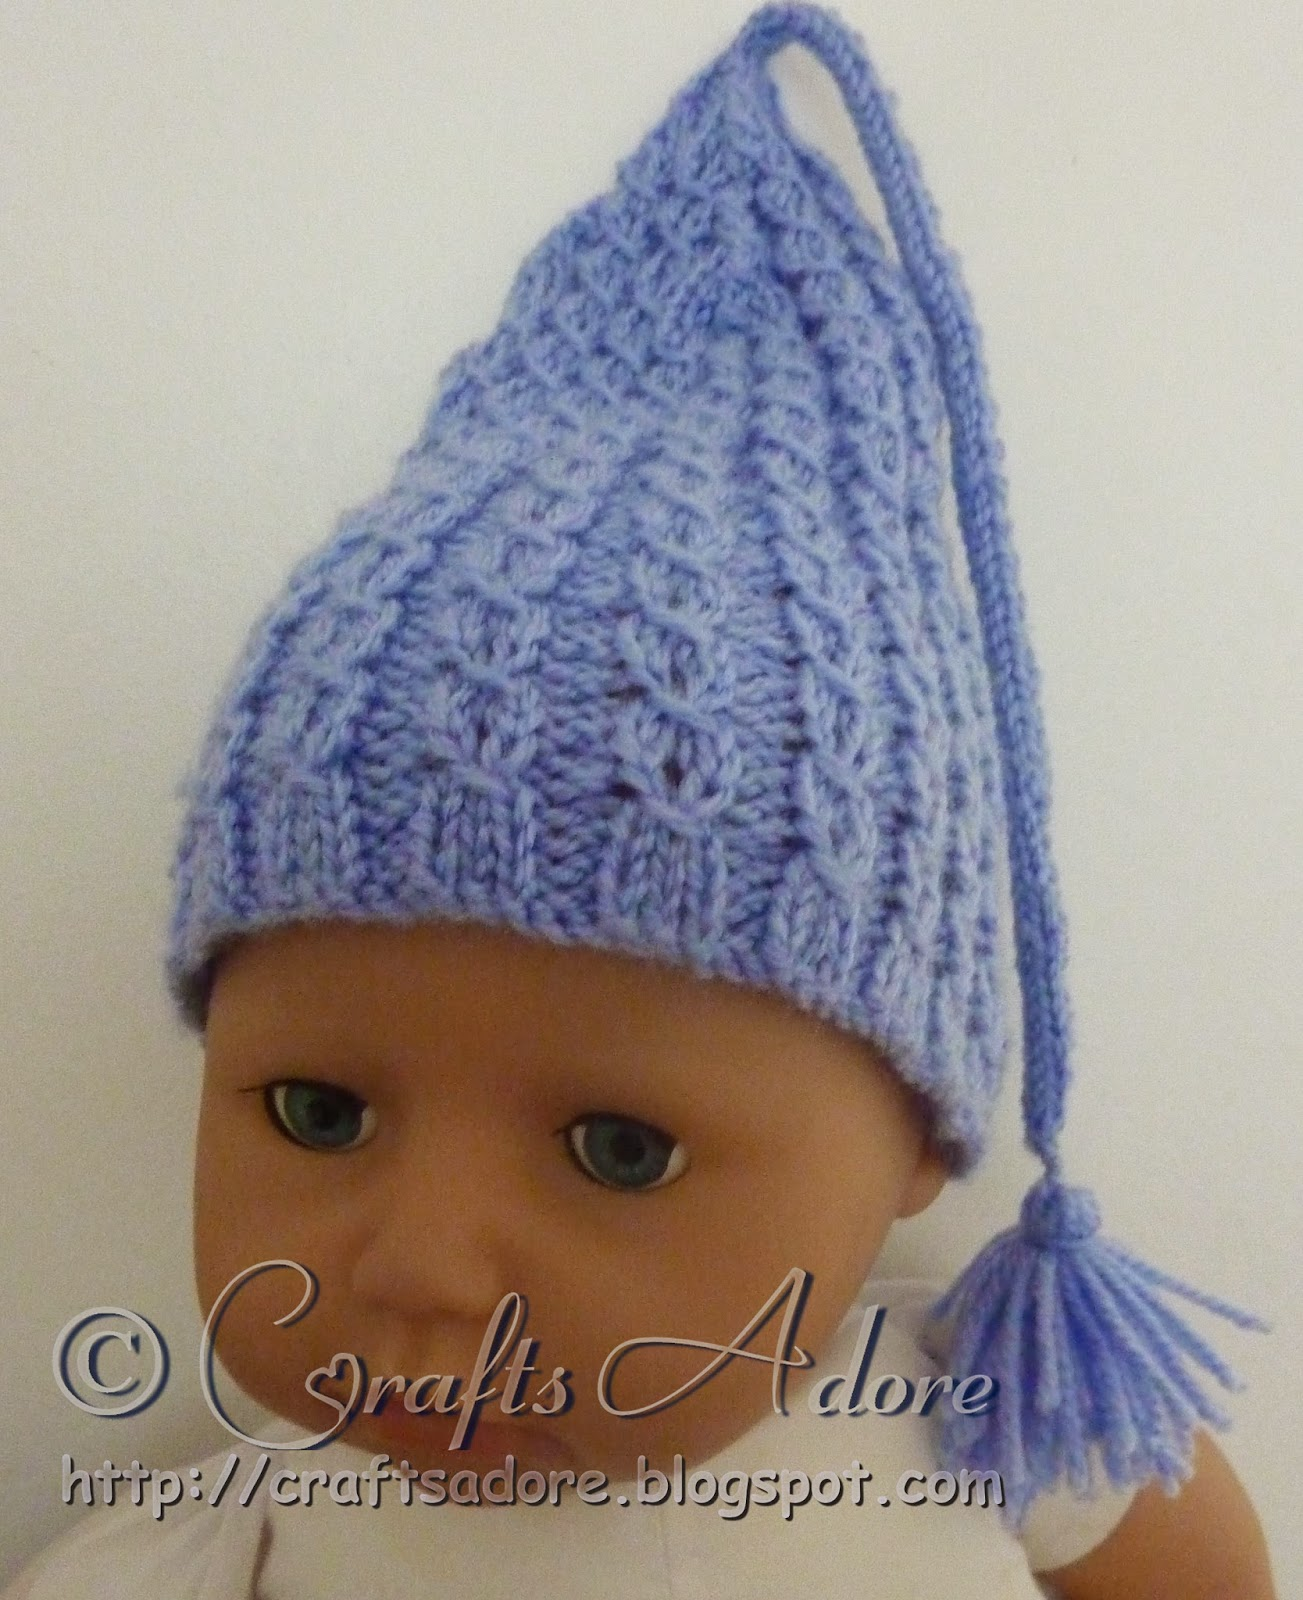 Gnome Hat Knitting Pattern Free : CraftsAdore: Knitted Baby Hat - Incredible Expanding Gnome Cap